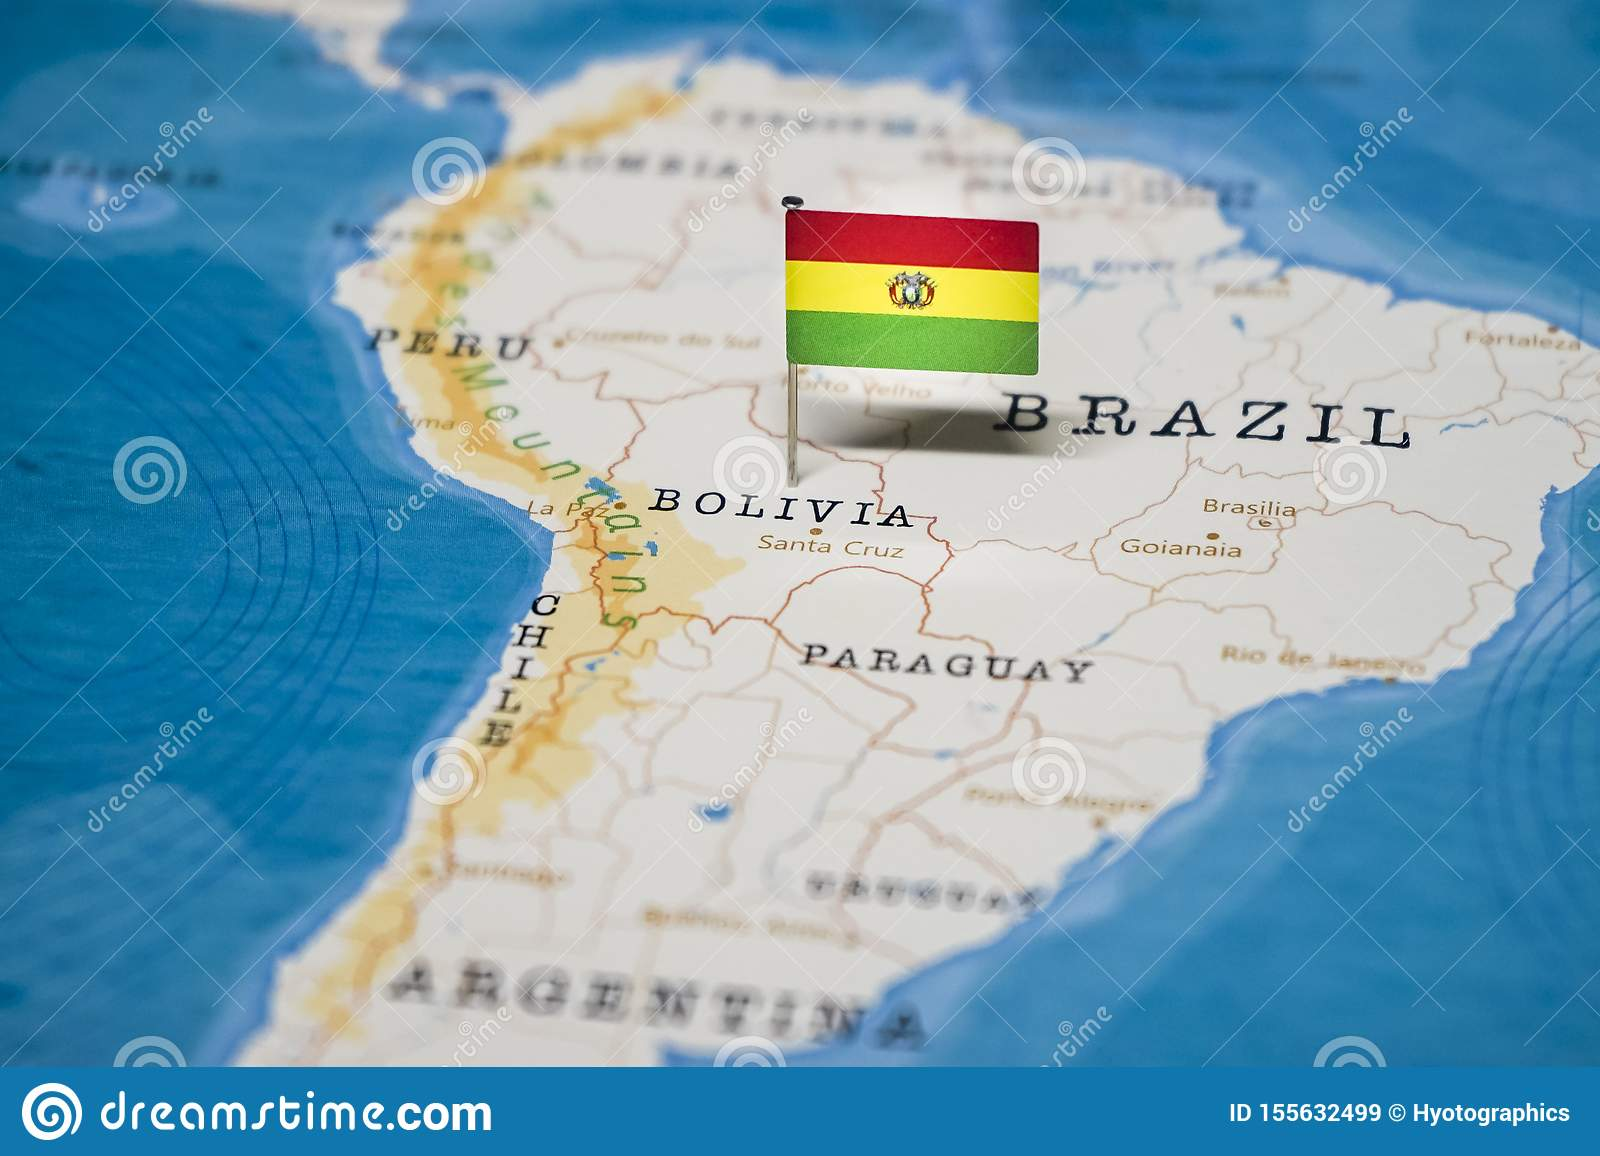 Picture of: The Flag Of Bolivia In The World Map Stock Image Image Of Holiday Country 155632499